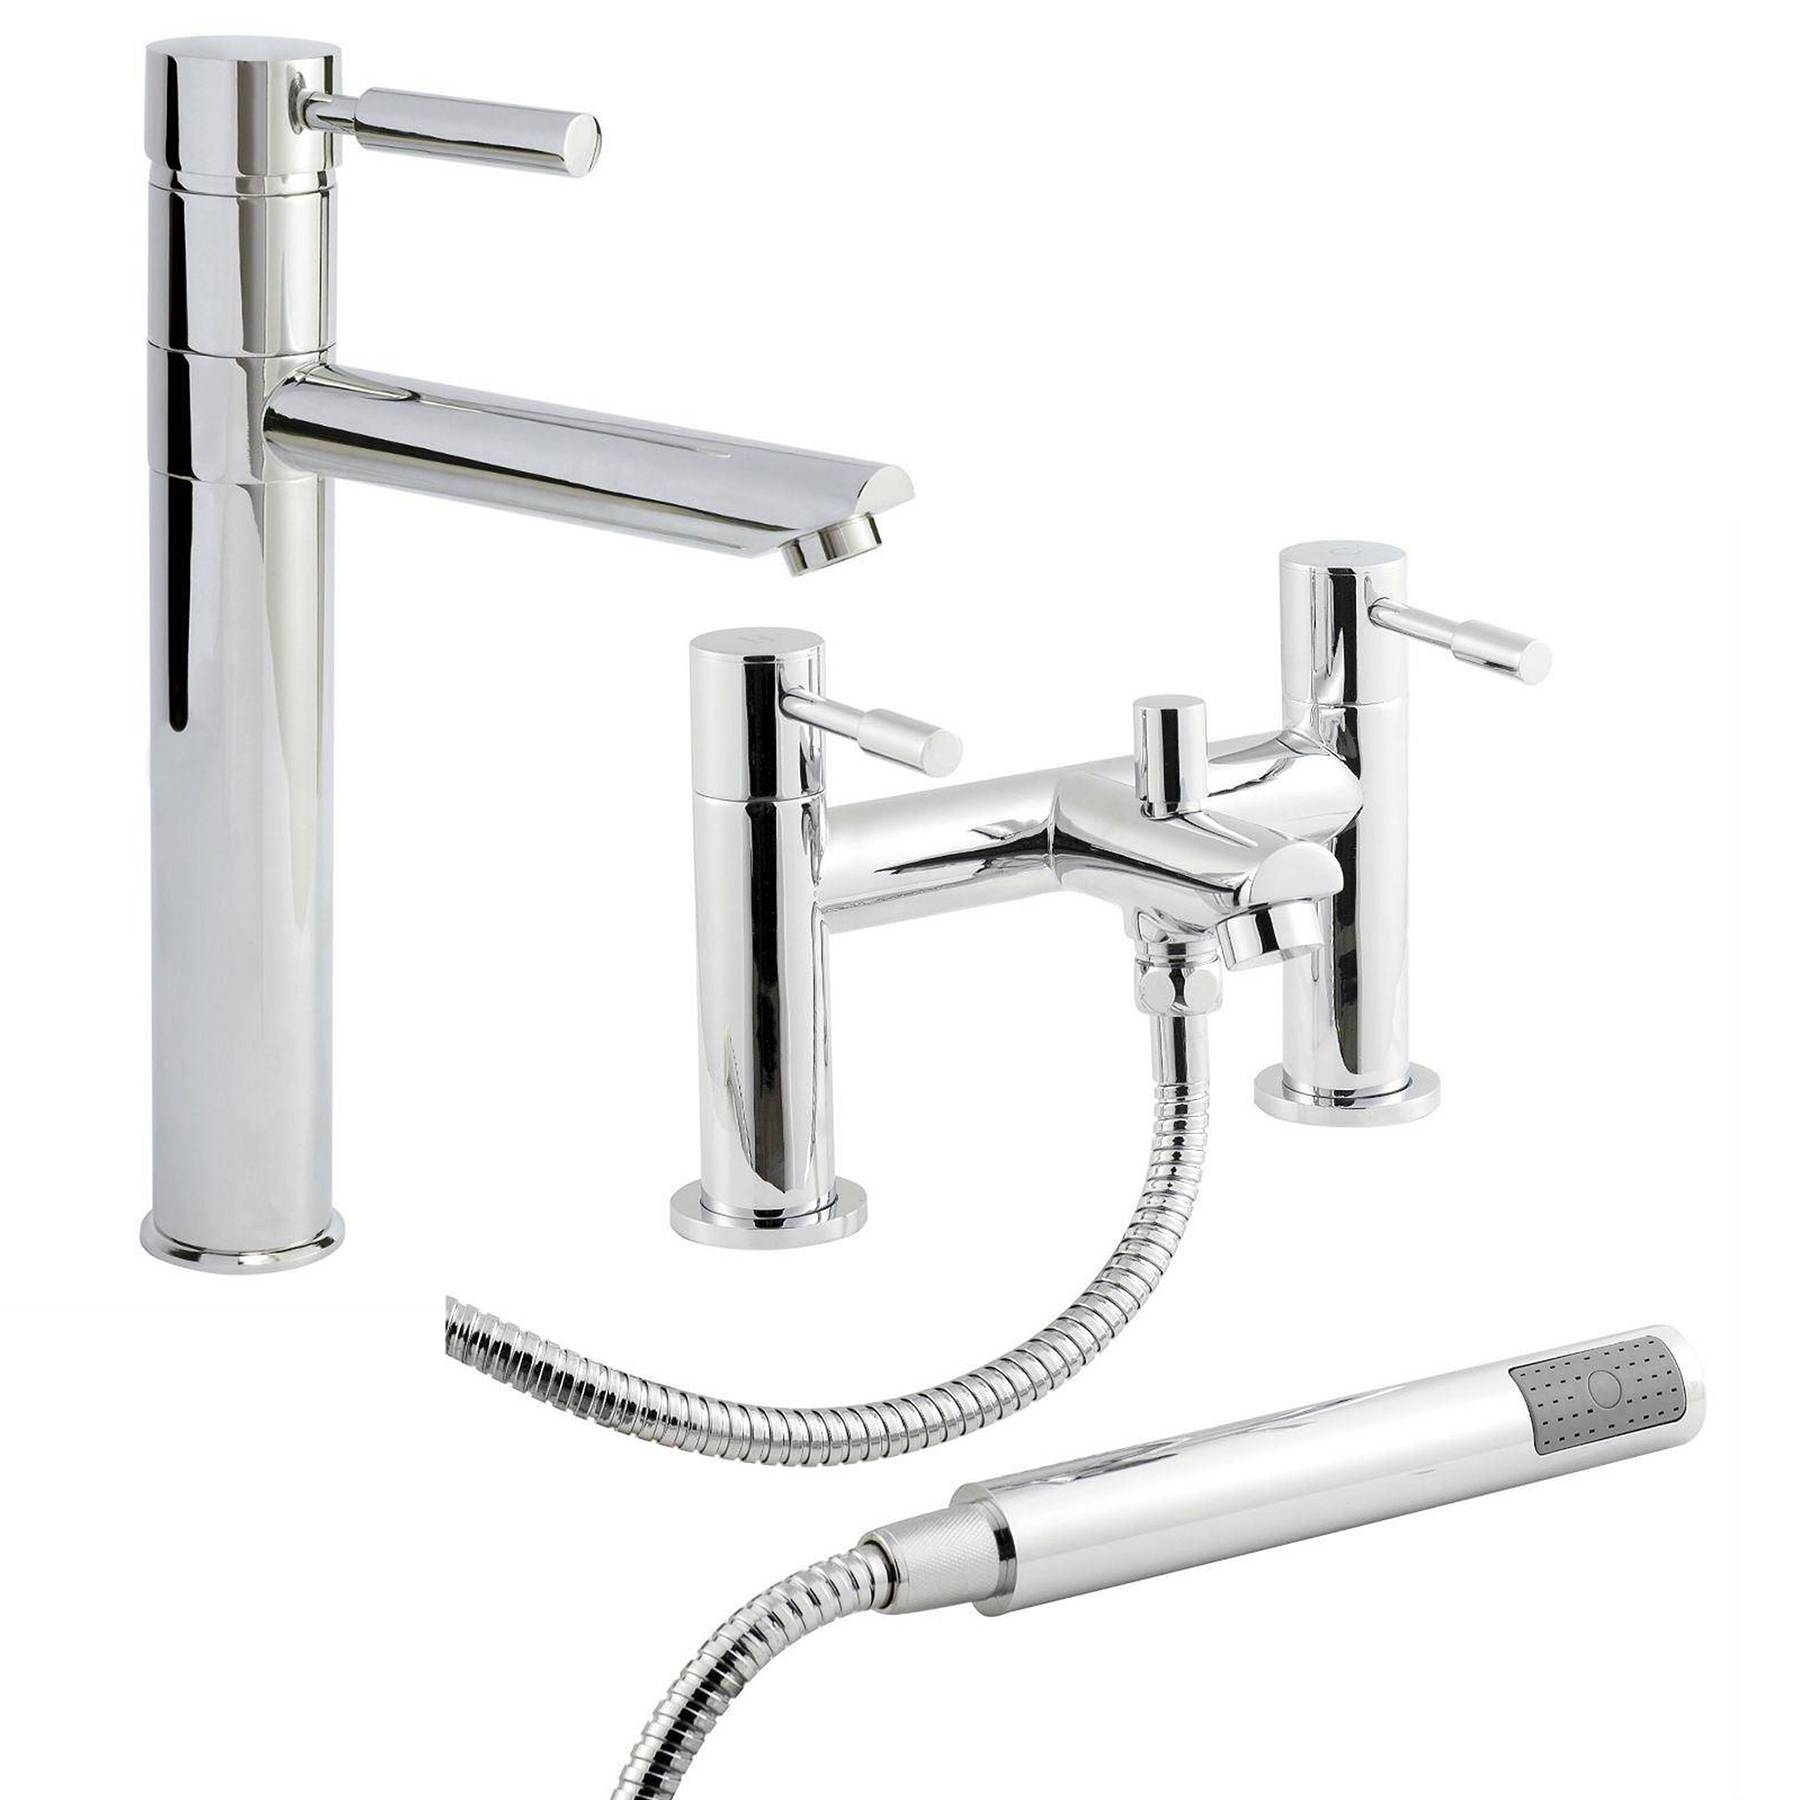 Royal Bathrooms Premier Series 2 Bath Shower Mixer with Shower Kit & Mono High Rise Basin Tap with Swivel Spout Pack